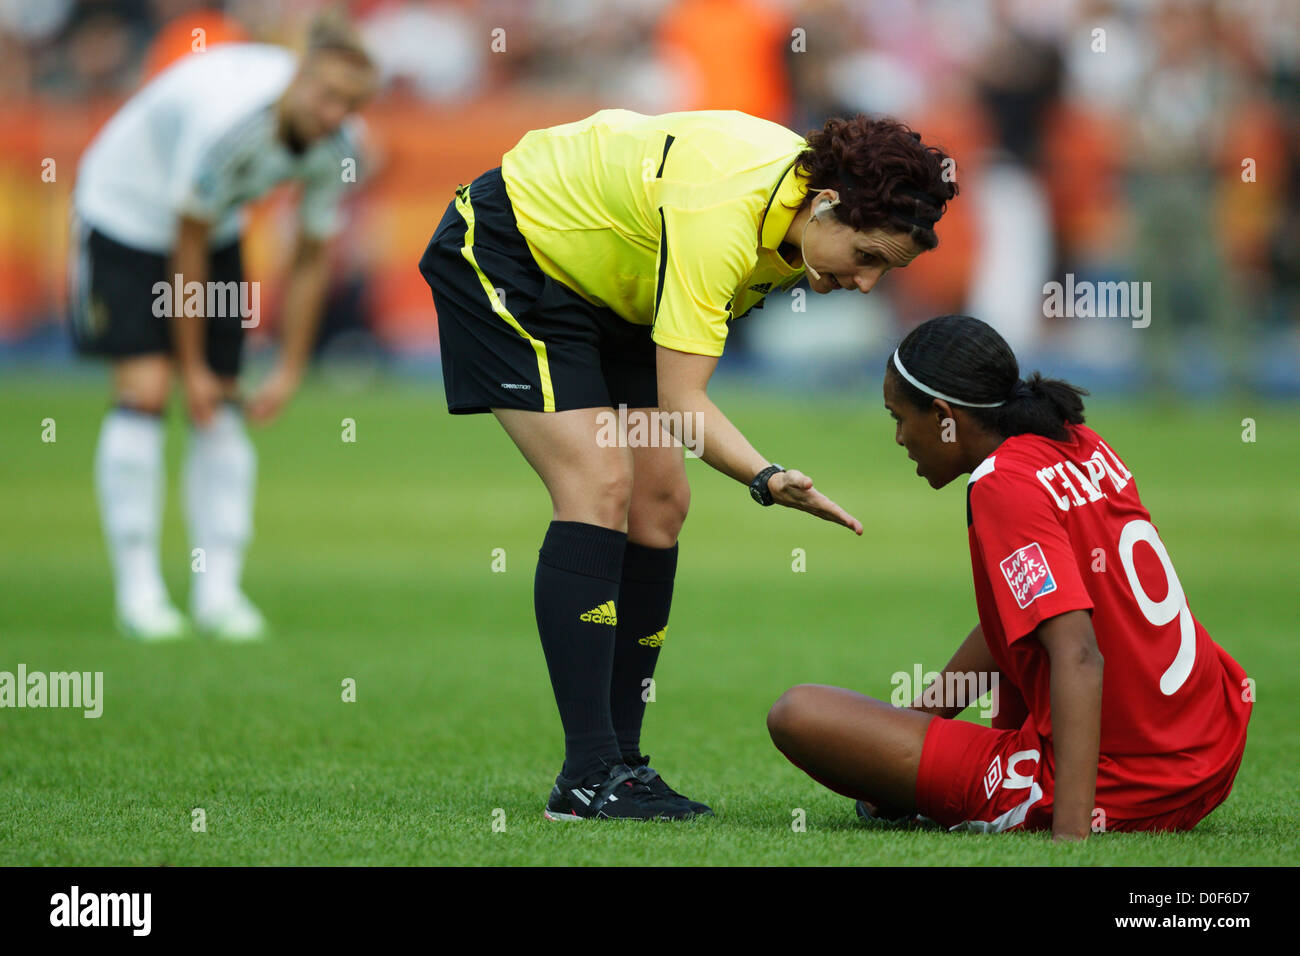 Soccer Referee Resume Referee Jacqui Melksham Encourages Candace Chapman Of